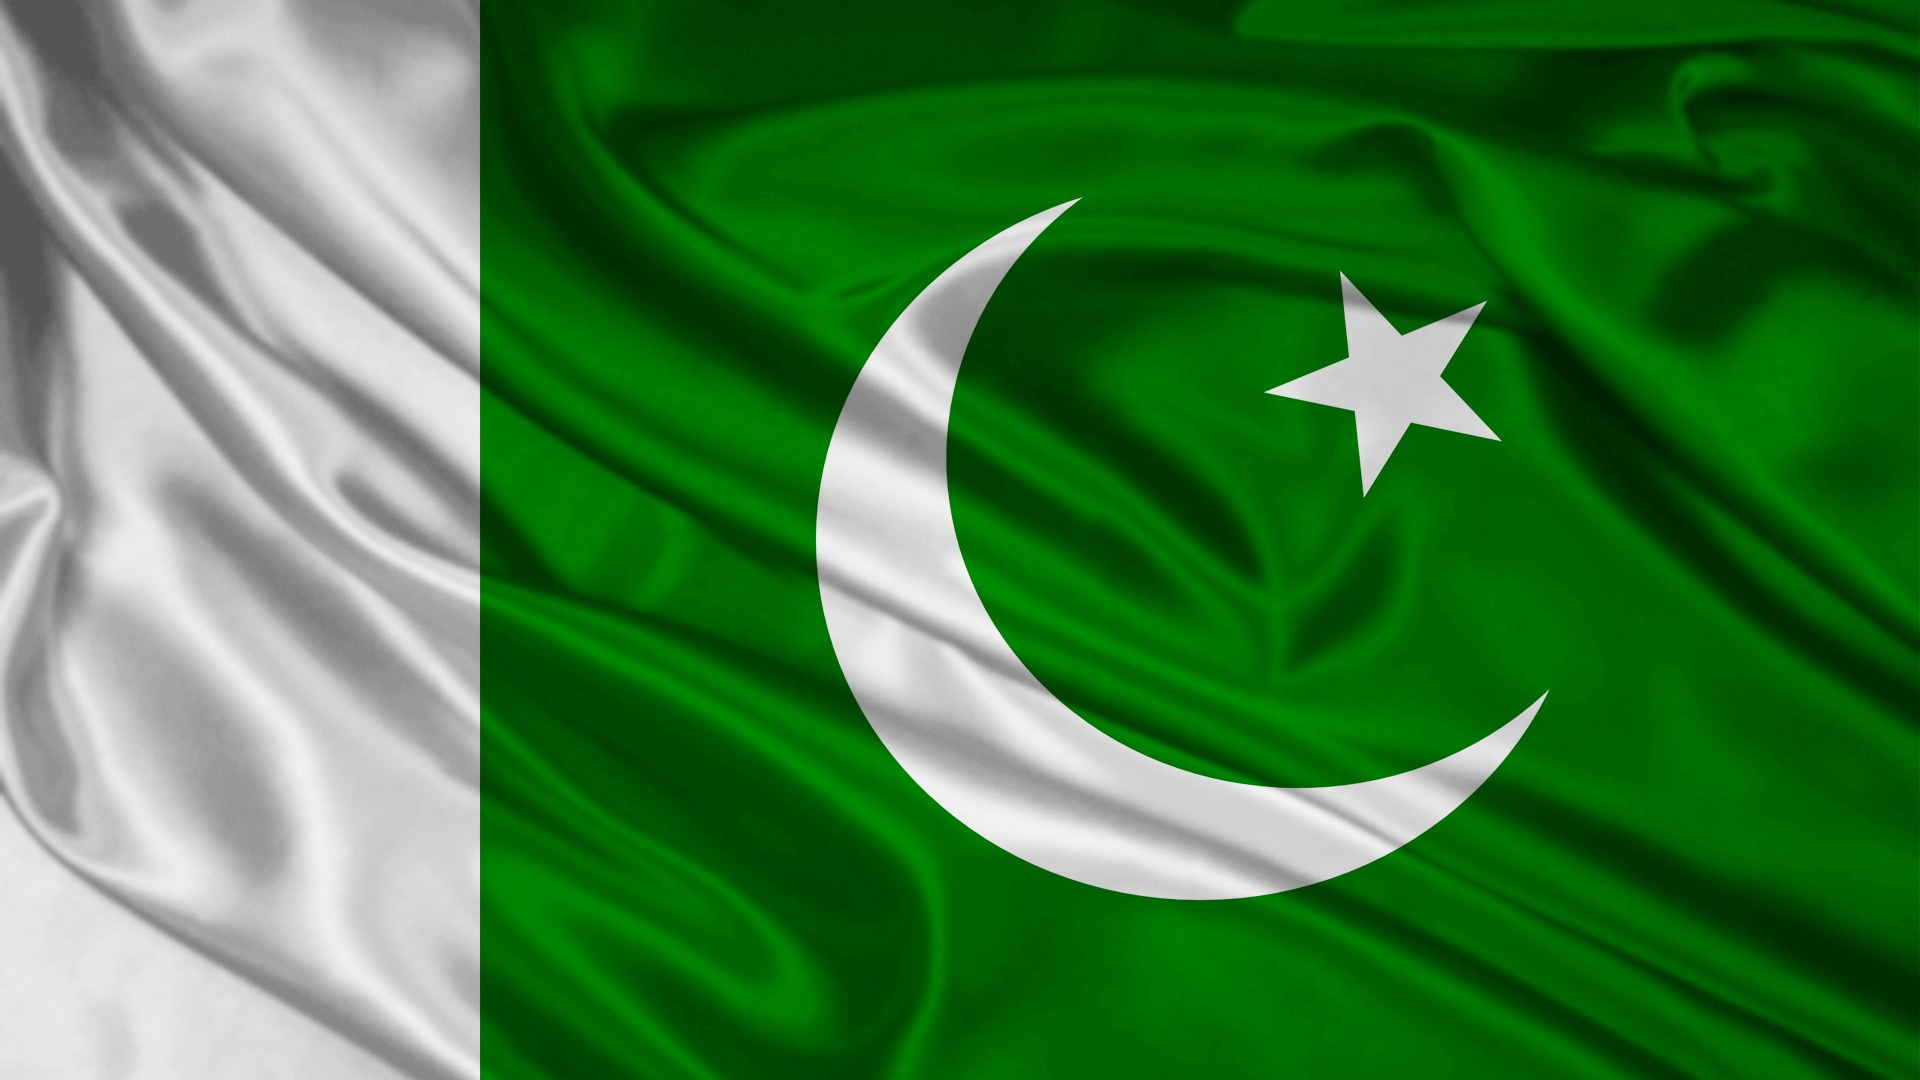 14 Aug Images Pakistan flag HD Images, Wallpapers & Pics